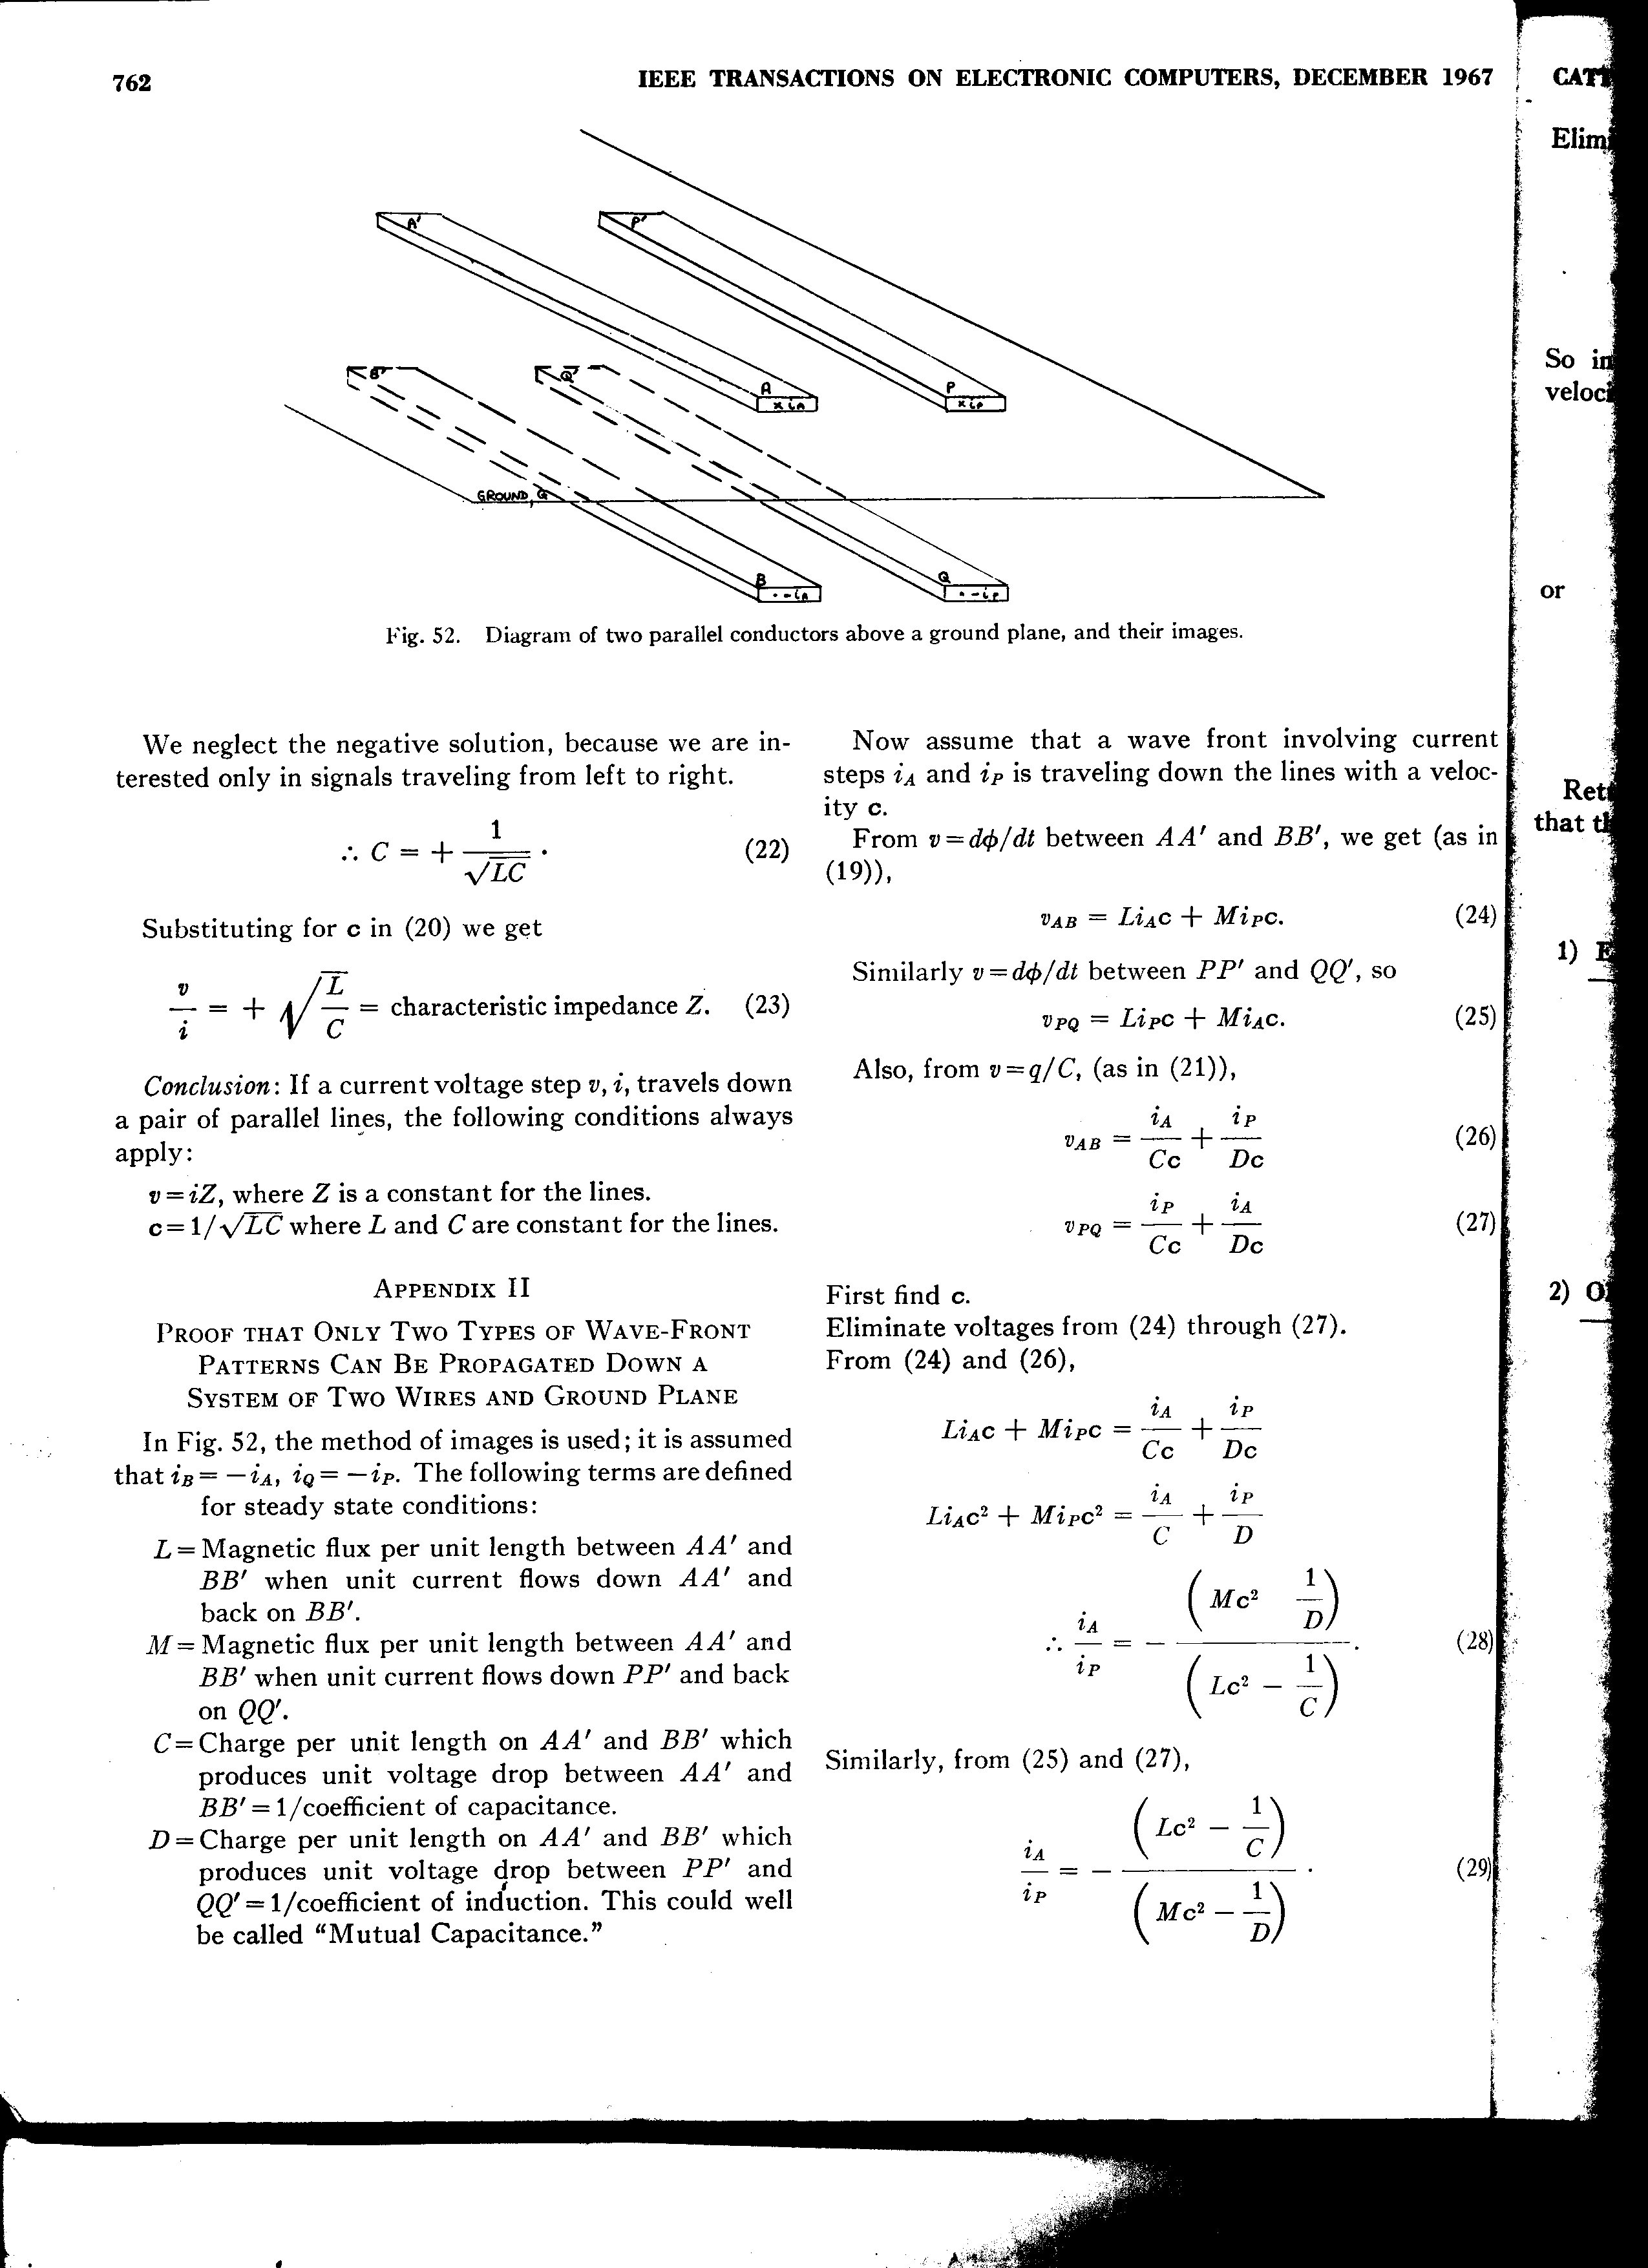 faradays law lab report essay To simulate faraday's experiment, click and drag the bar magnet back   opposes the field of the moving magnet, as explained by lenz's law.